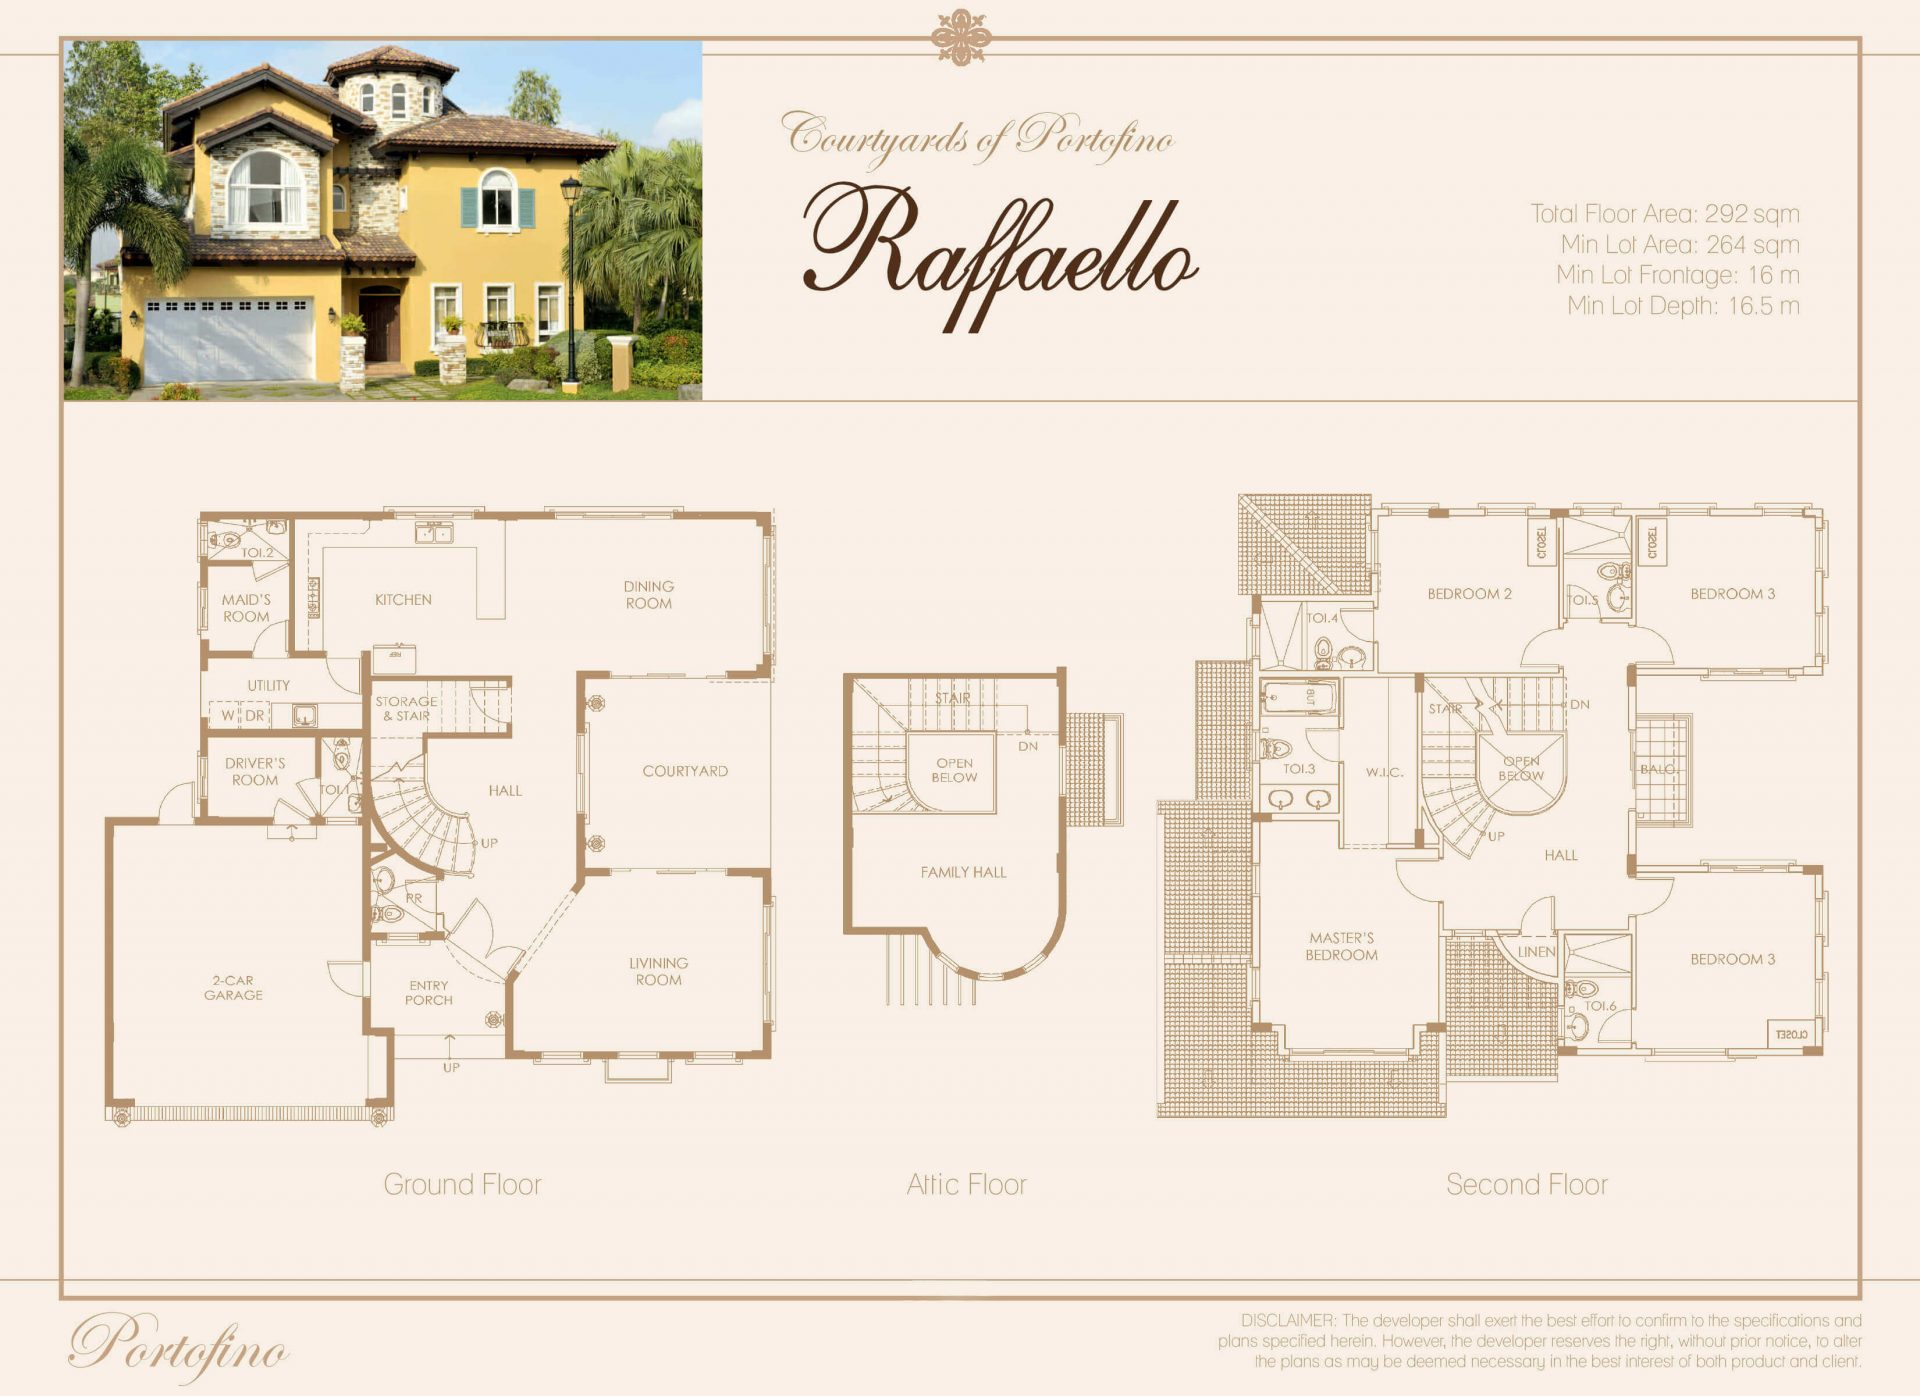 Vista Alabang | Portofino South | Rafaello House Model Floor Plan | Luxury Homes by Brittany Corporation